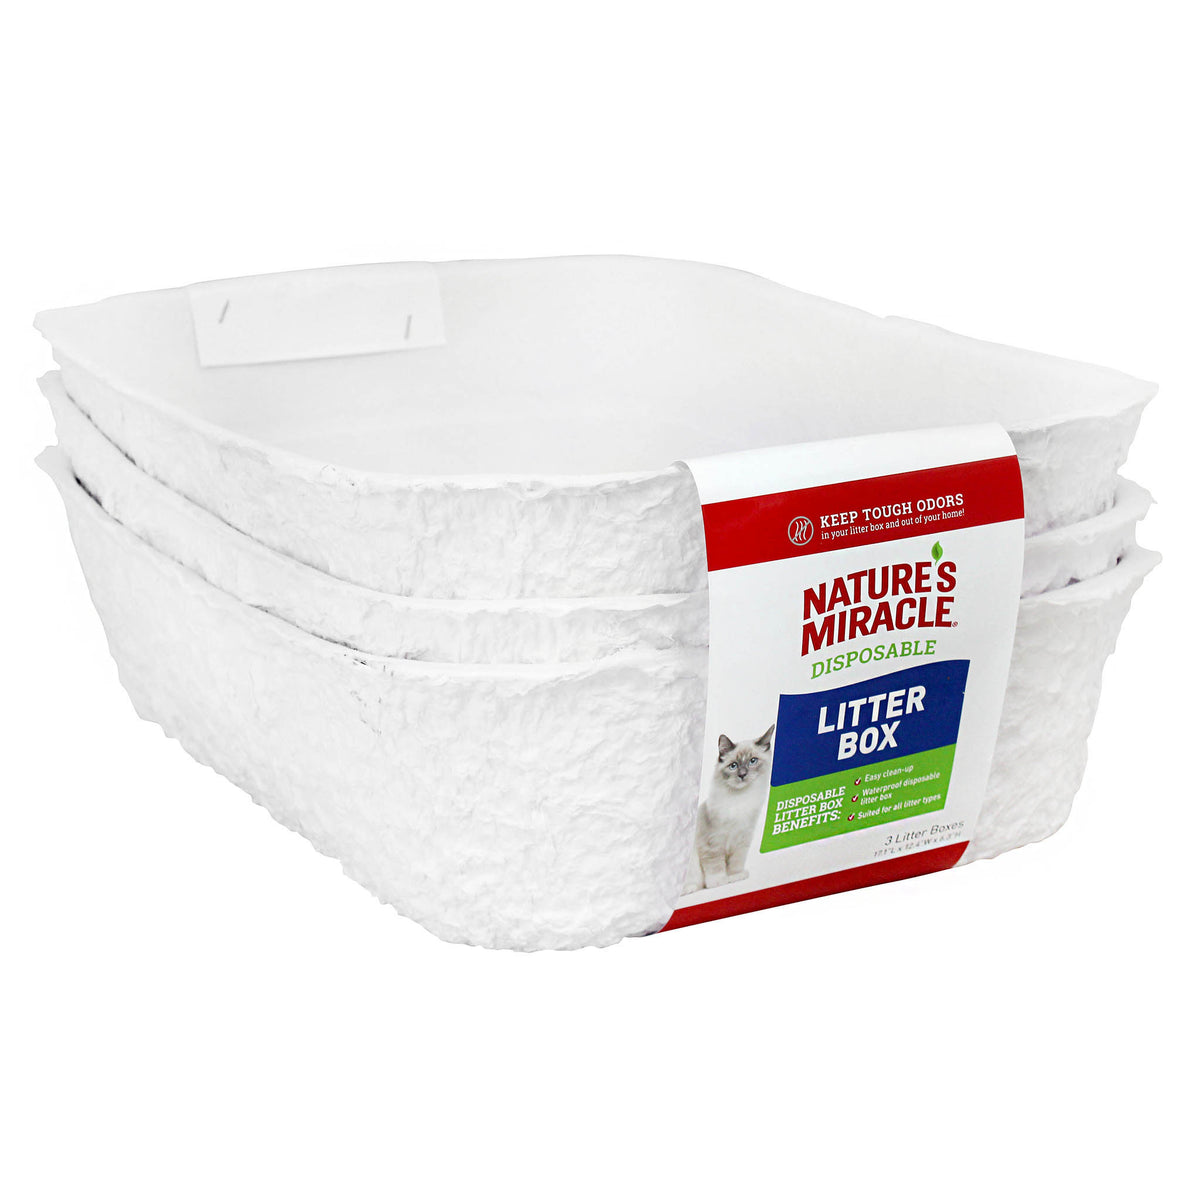 Disposable Cat Litter Tray - 3 Pack